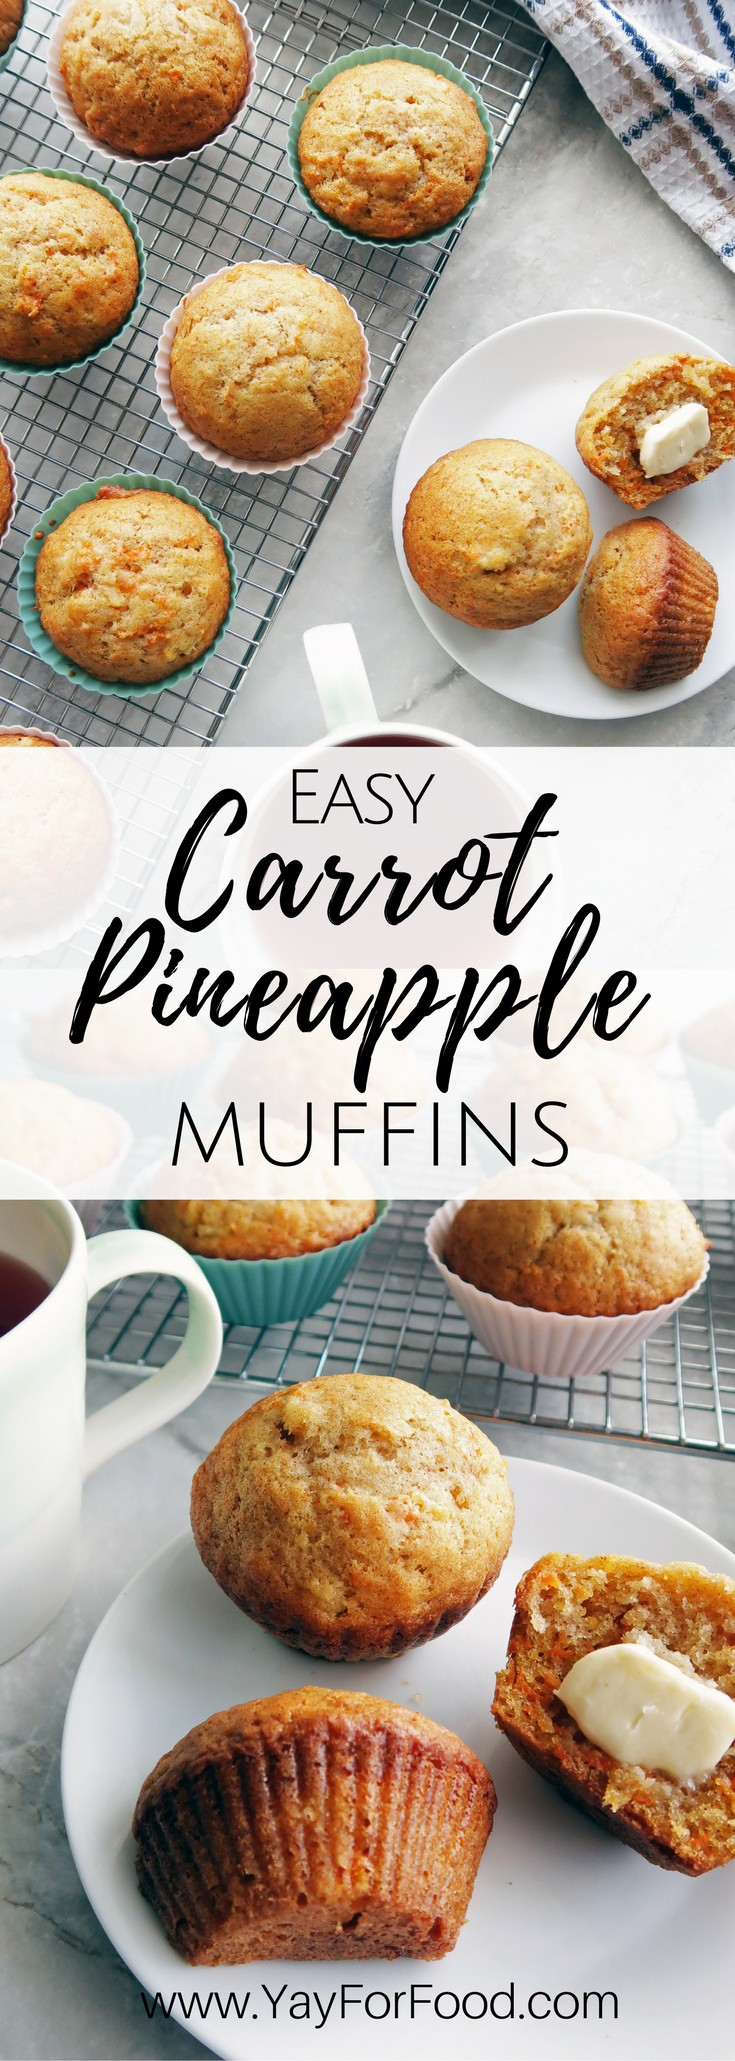 These classic Carrot Pineapple Muffins are flavourful, super soft, and extremely easy to make. Make these delicious muffins in less than 35 minutes.